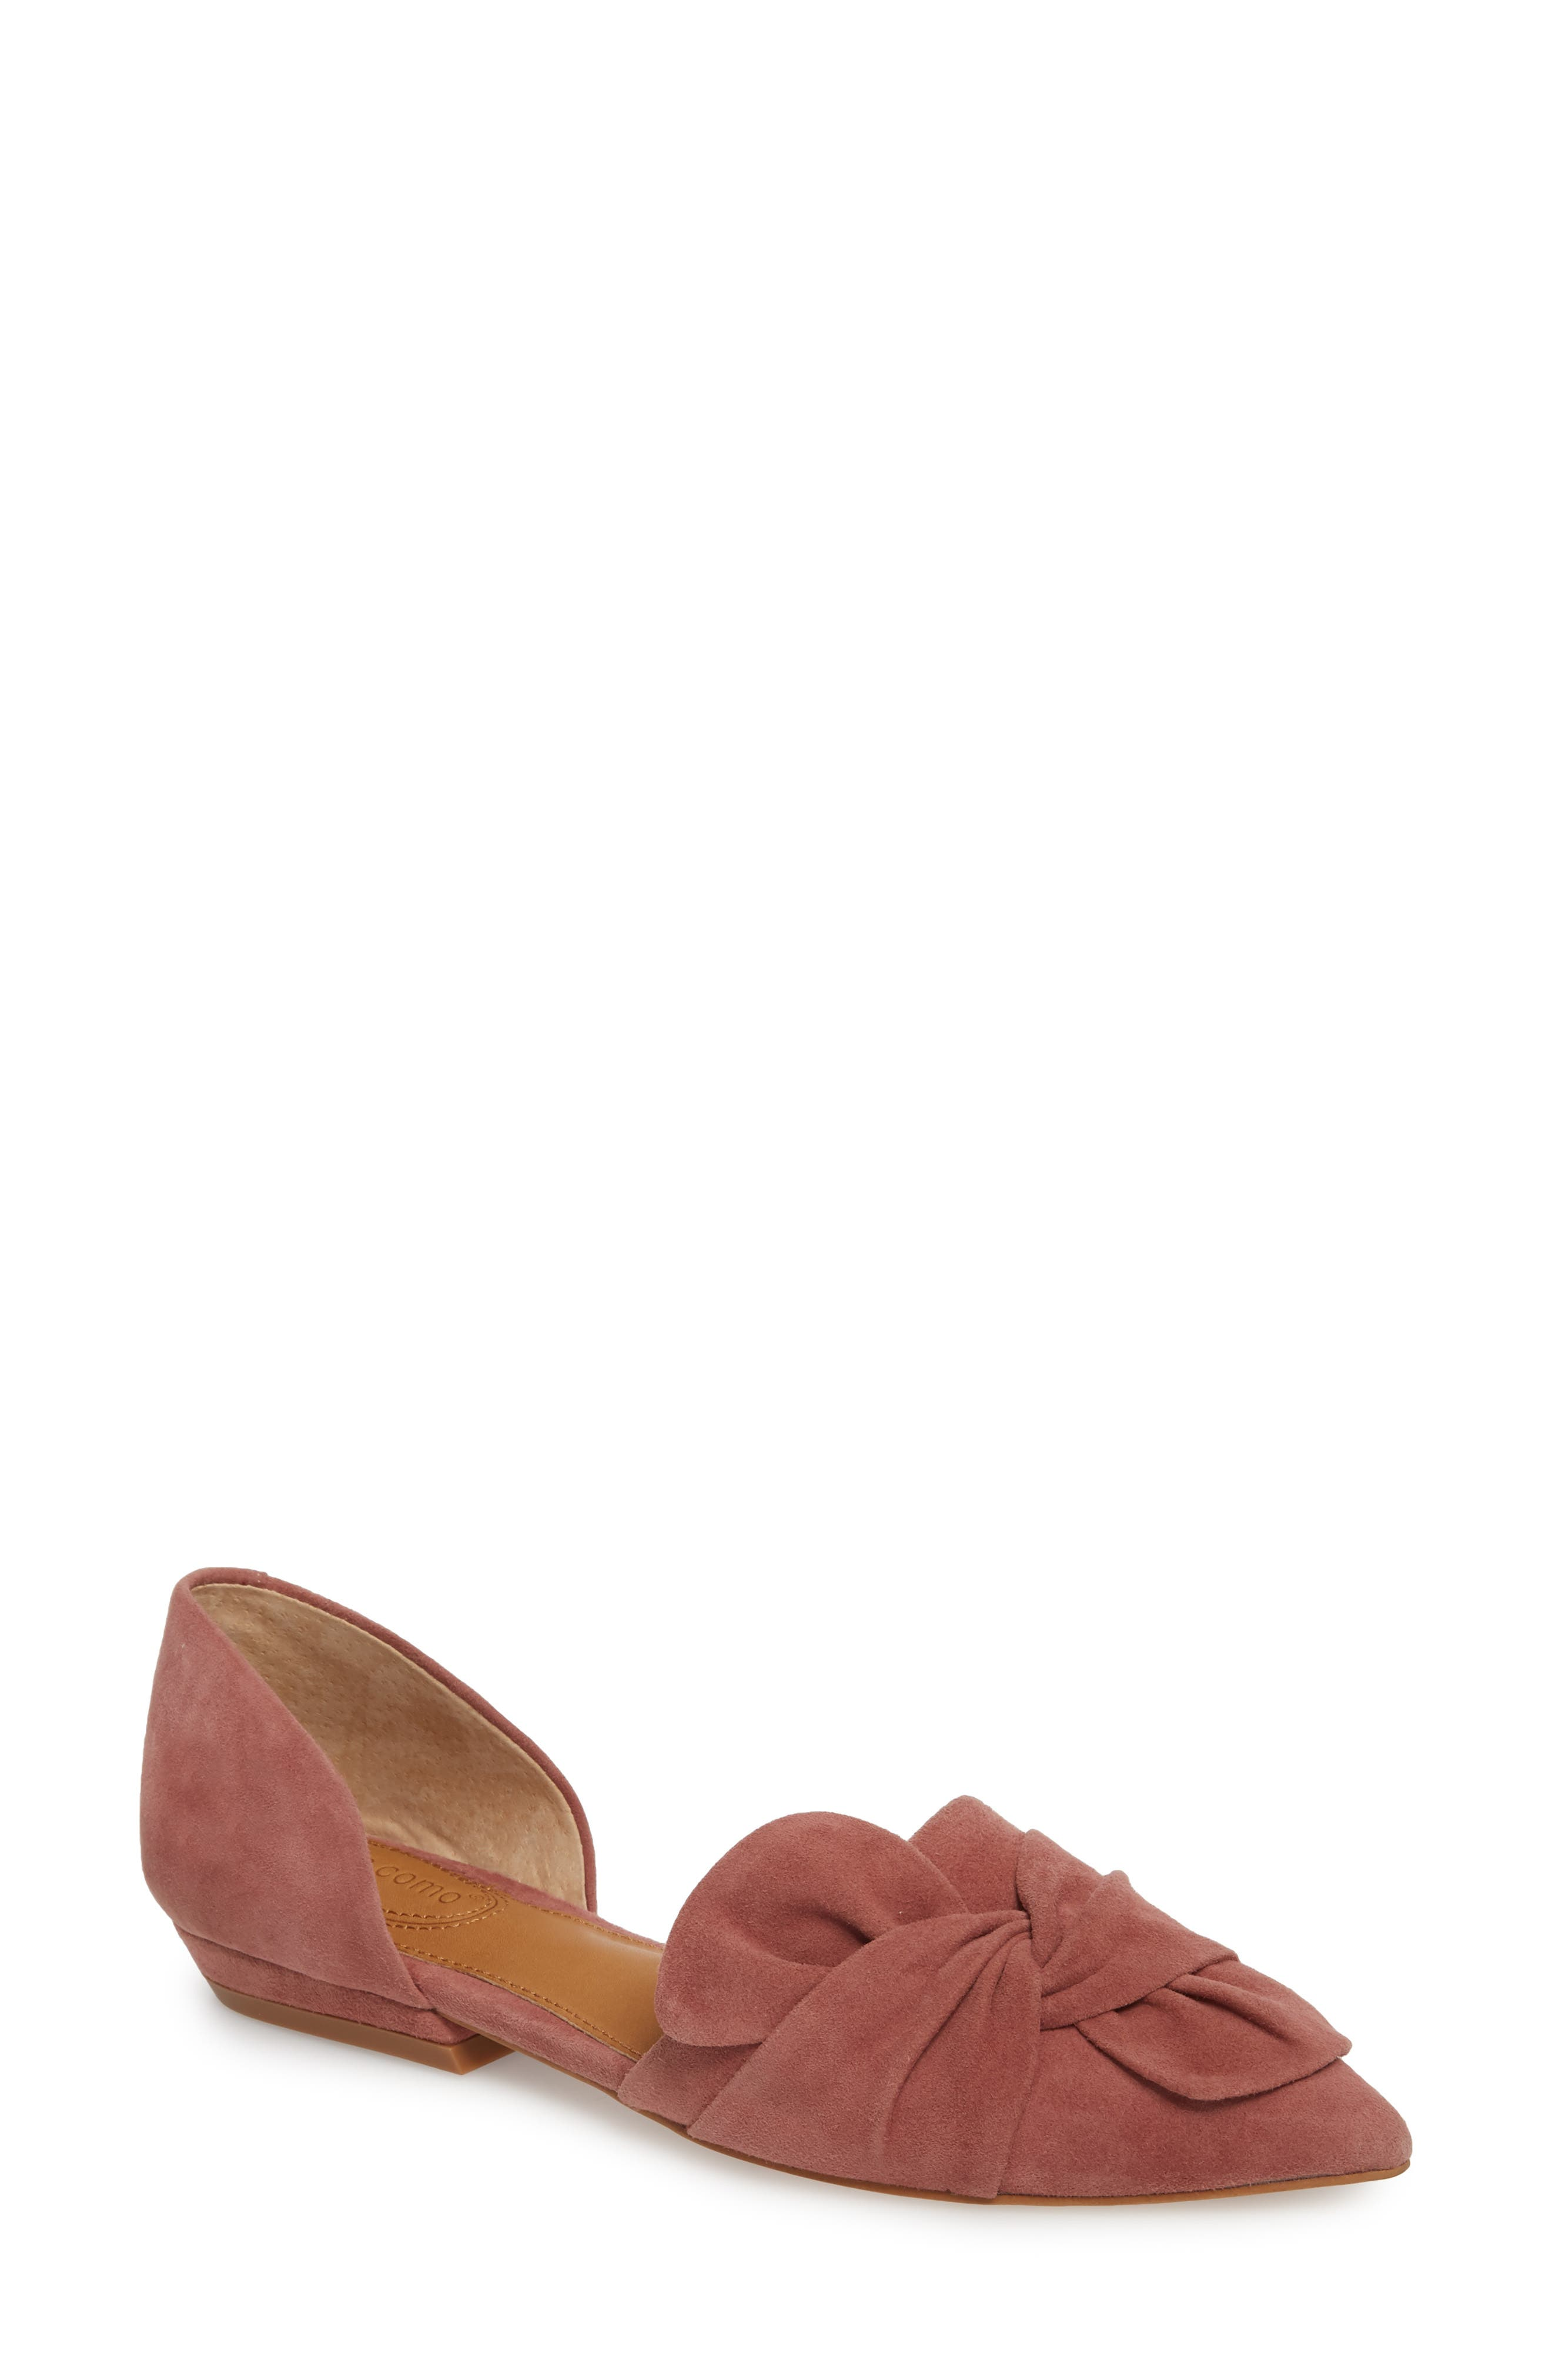 Mollie d'Orsay Flat,                             Main thumbnail 1, color,                             OLD ROSE SUEDE